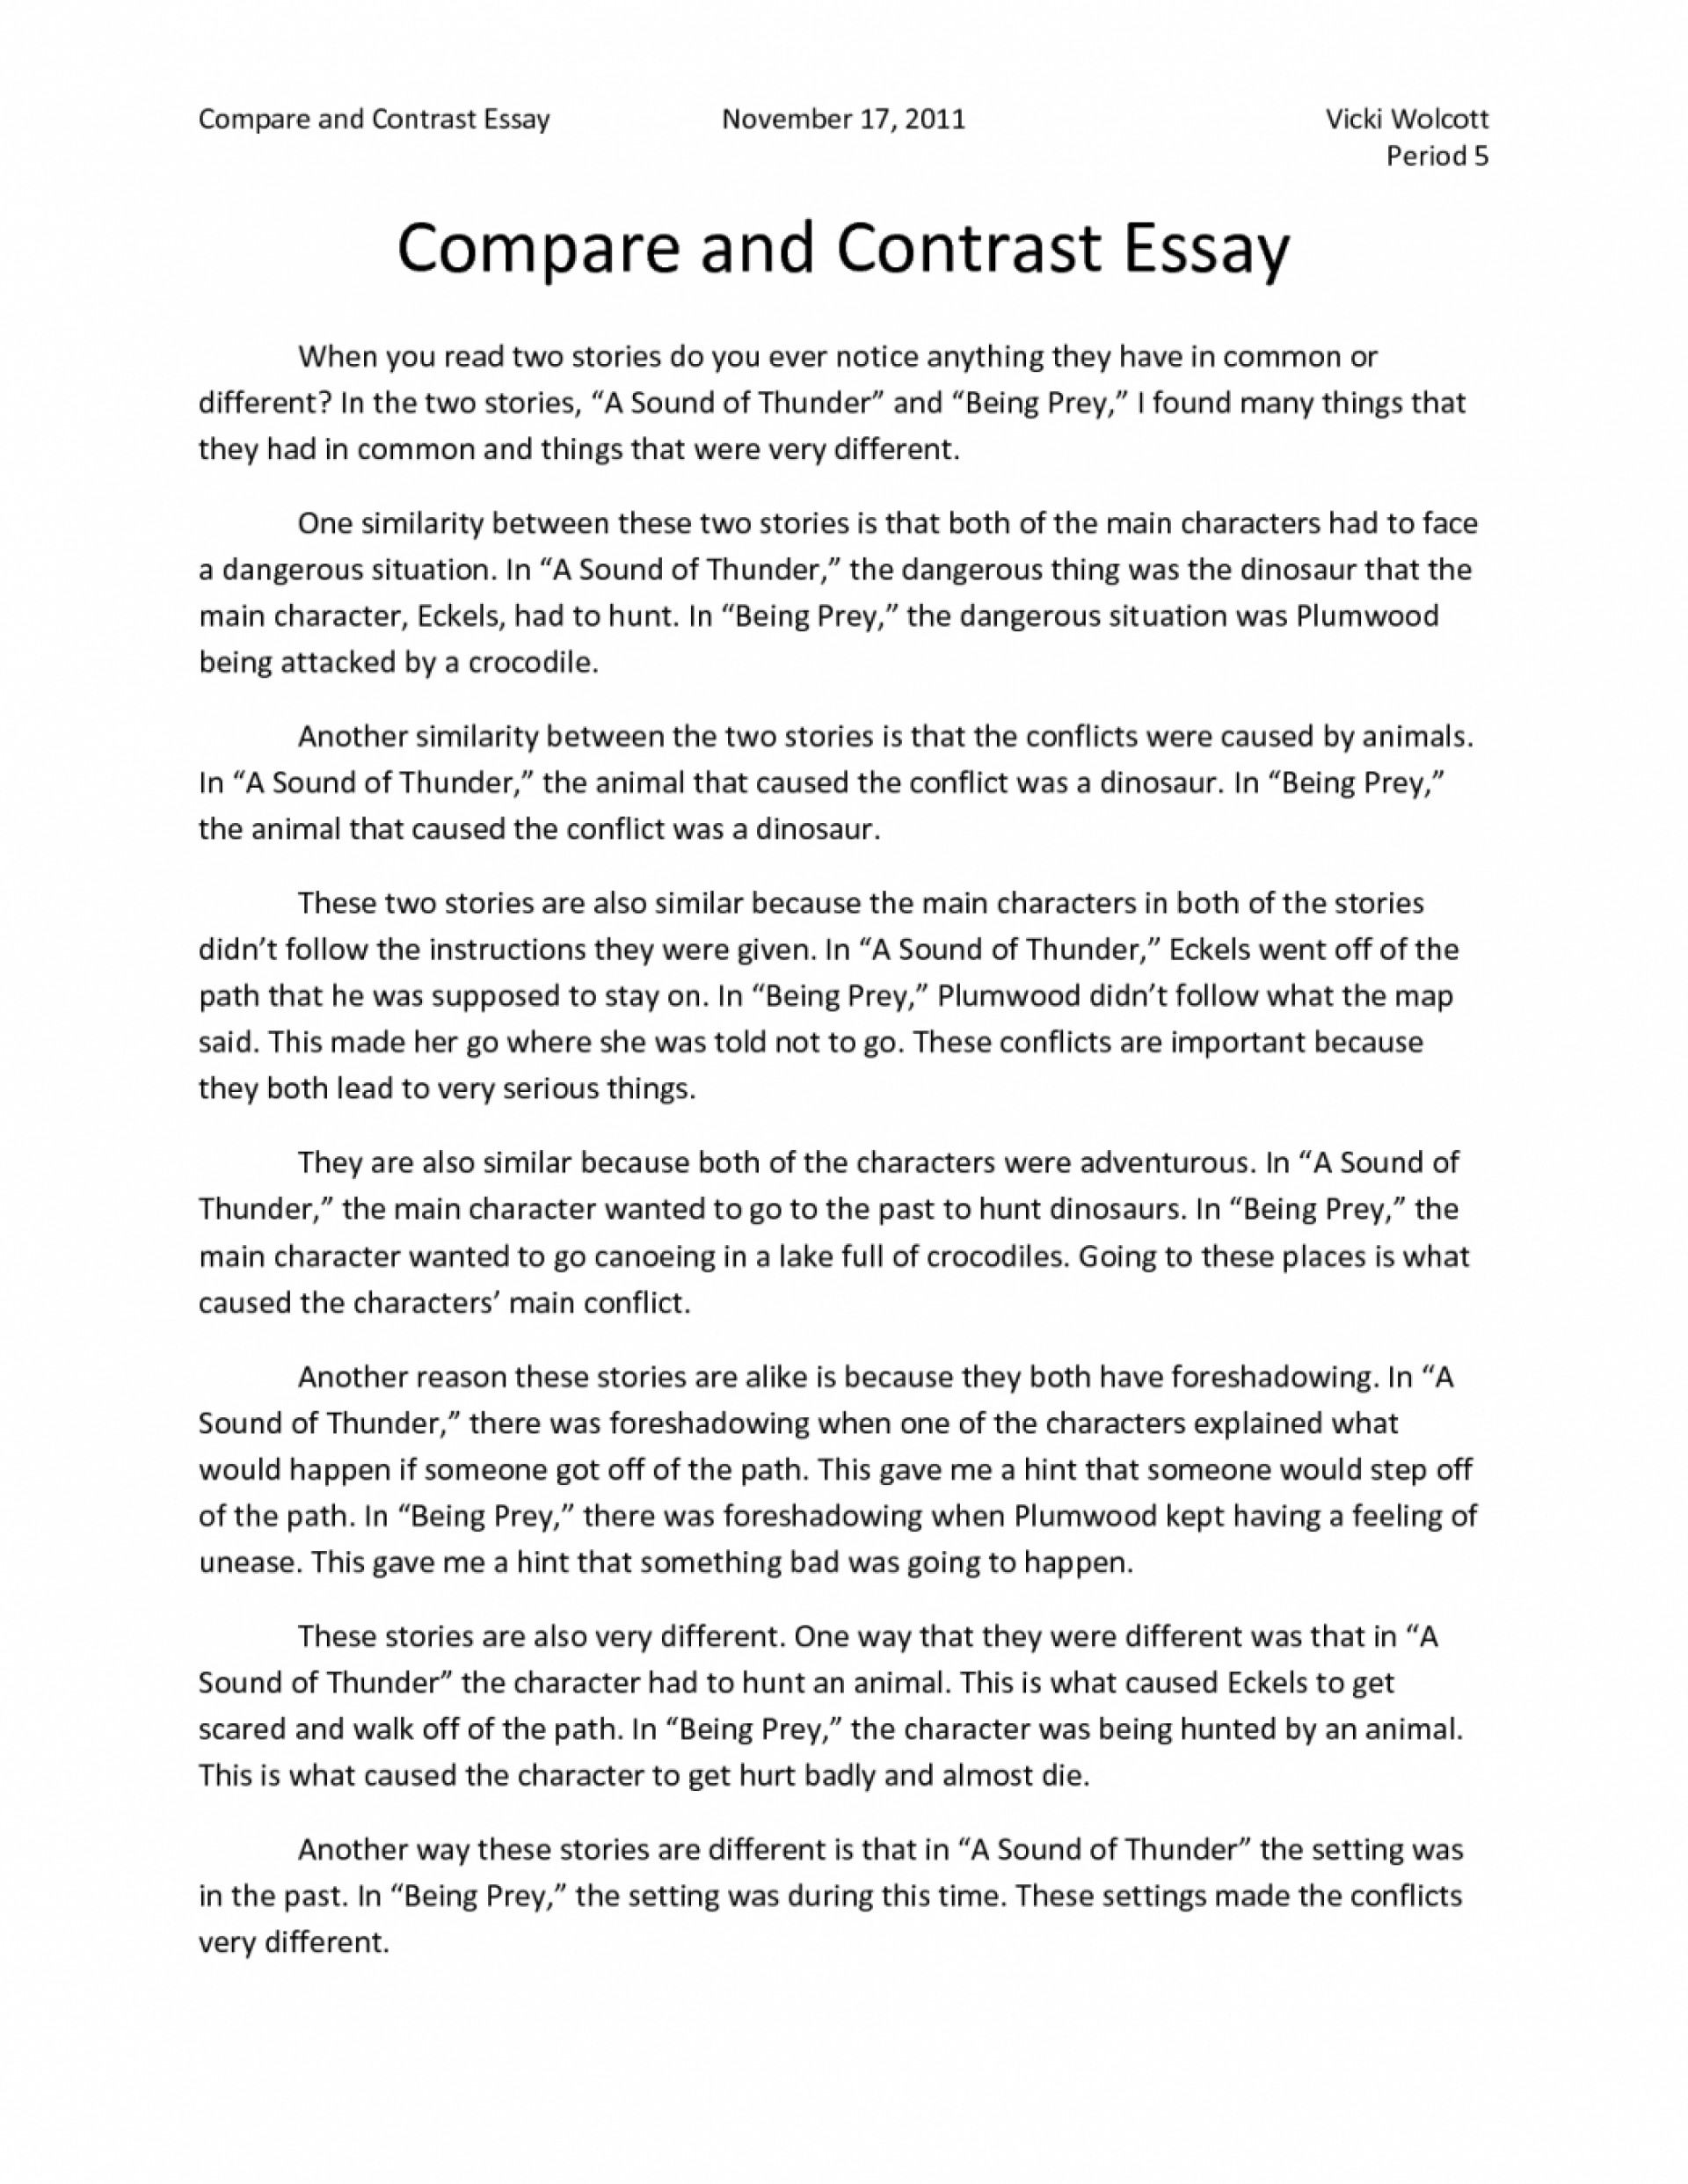 020 Argumentative Essay Topics For Proposal On Immigration Laws Compare And Contrast 1048x1356 Wonderful Illegal 1920